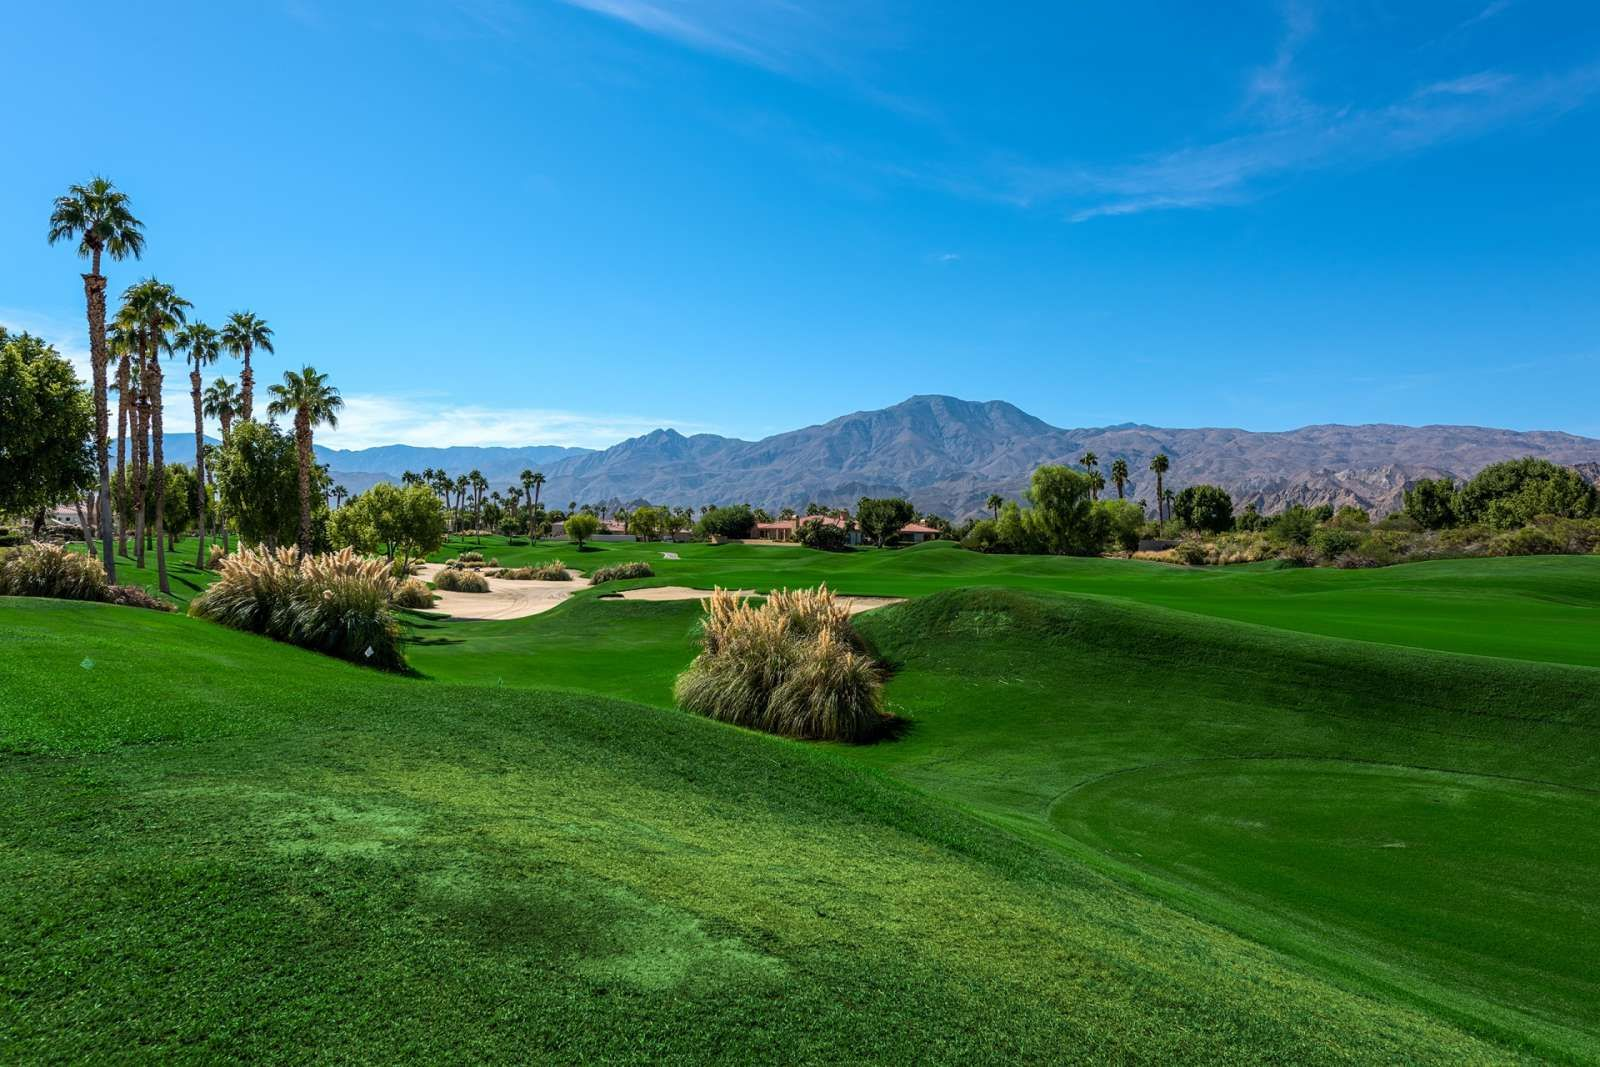 La Quinta Vacation Rental Winged Foot Home Home Rental On Itrip Net Golf Vacation California Sport Golf Courses Public Golf Courses Famous Golf Courses